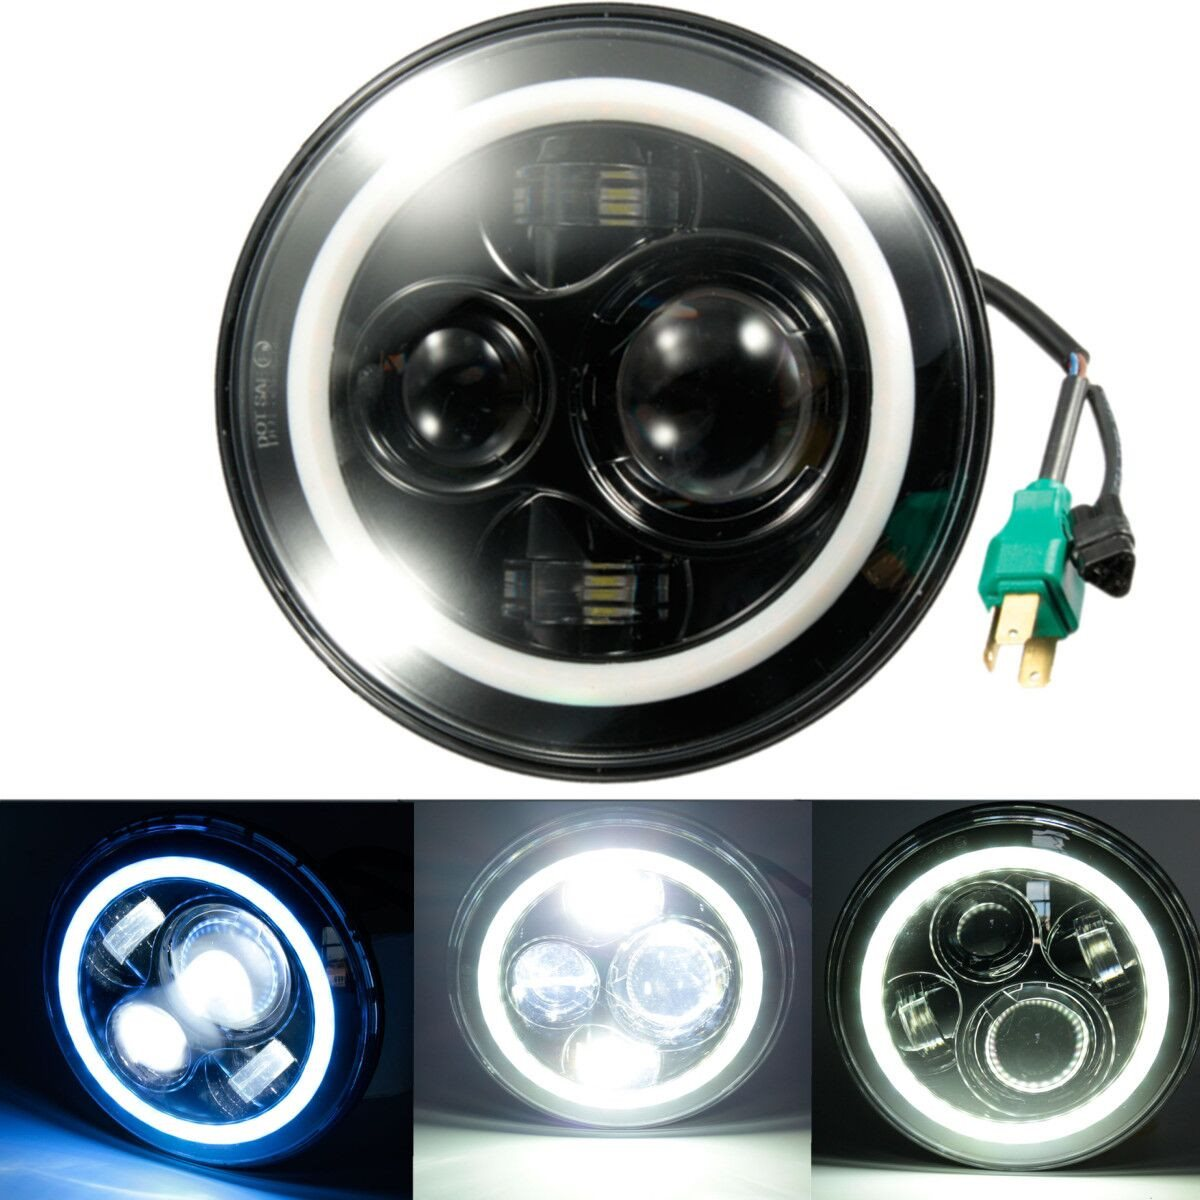 For Jeep JK 7 Round Headlight Led For Jeep/Wrangler 97-15 Hummer Toyota Defender 7 LED Harley Motorcycle Headlamp For Harley switch for jeep wrangler rocker switches for jeep wrangler jk